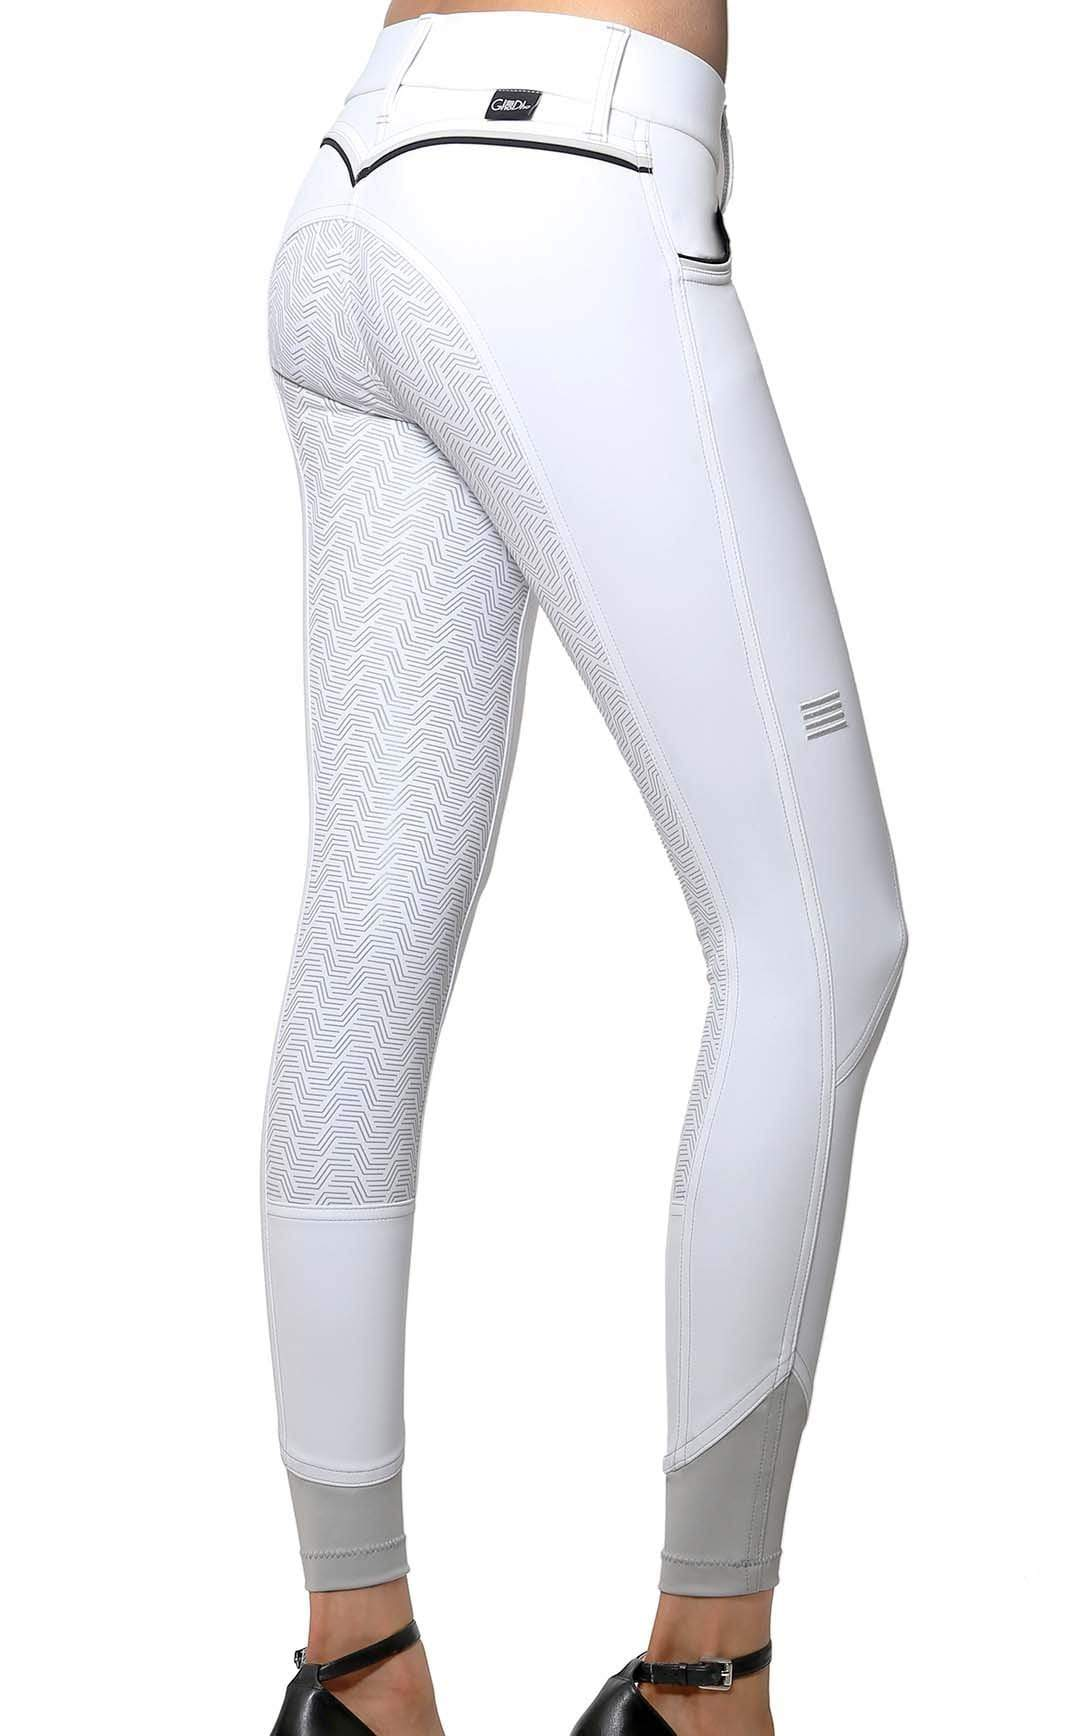 GhoDho Breeches sz 22 / White GhoDho Adena Full Seat Breeches equestrian team apparel online tack store mobile tack store custom farm apparel custom show stable clothing equestrian lifestyle horse show clothing riding clothes horses equestrian tack store